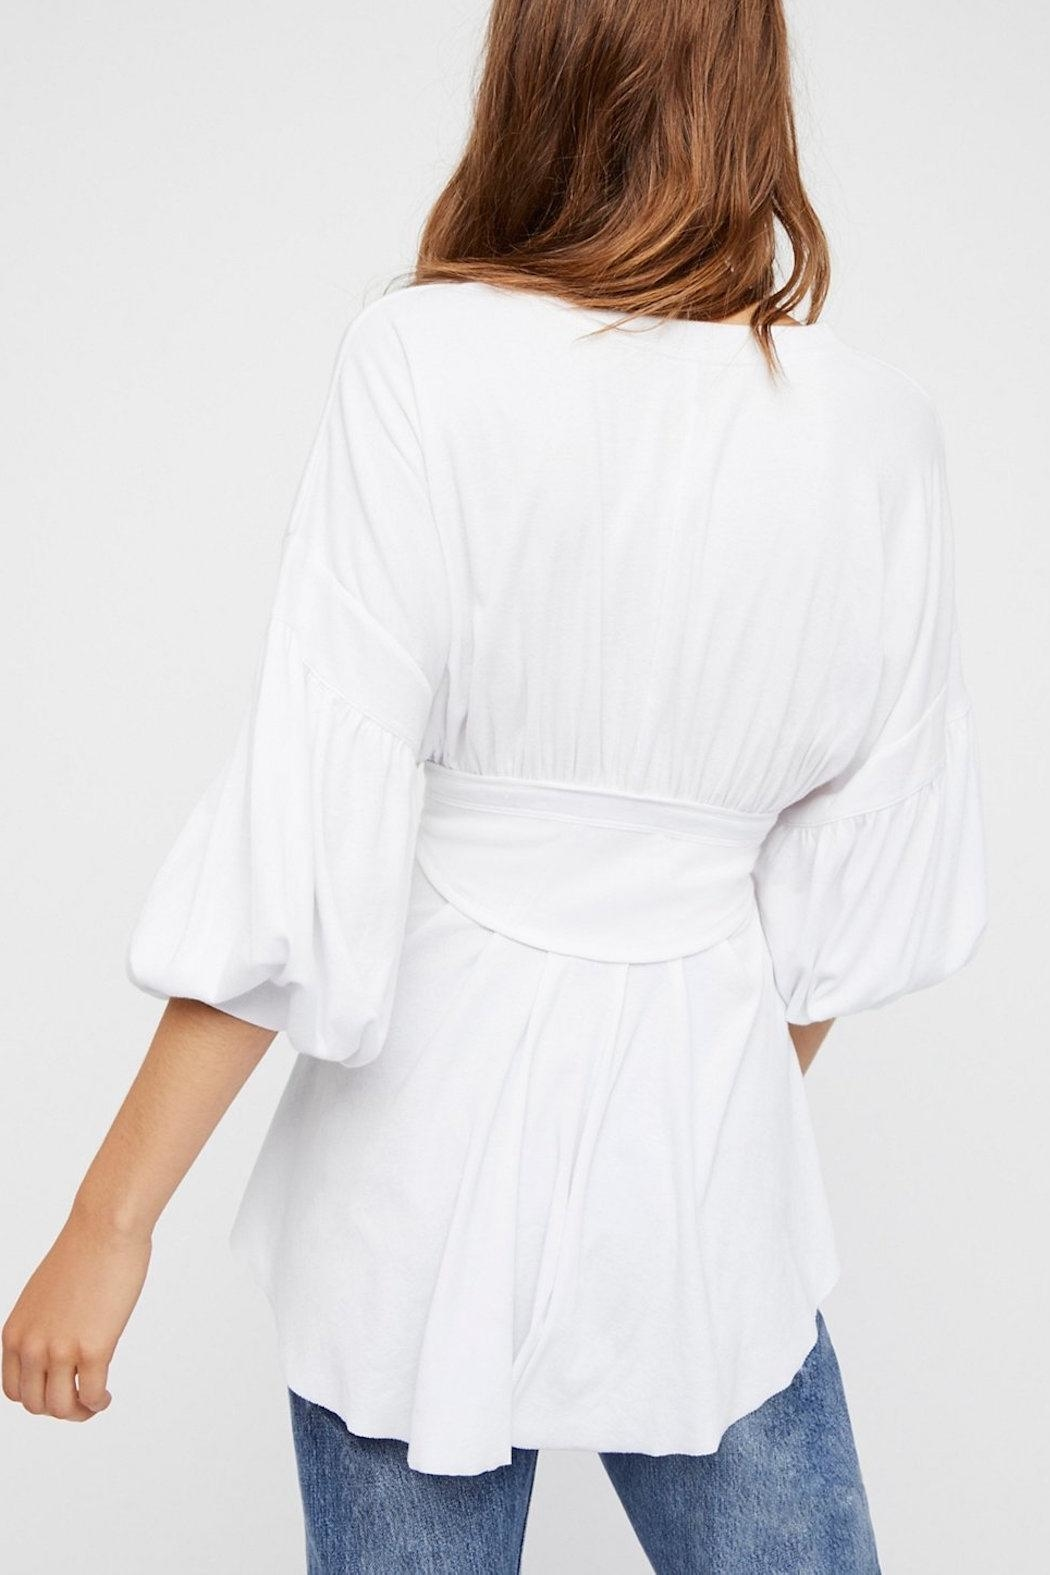 Free People Time Traveler Top - Front Full Image